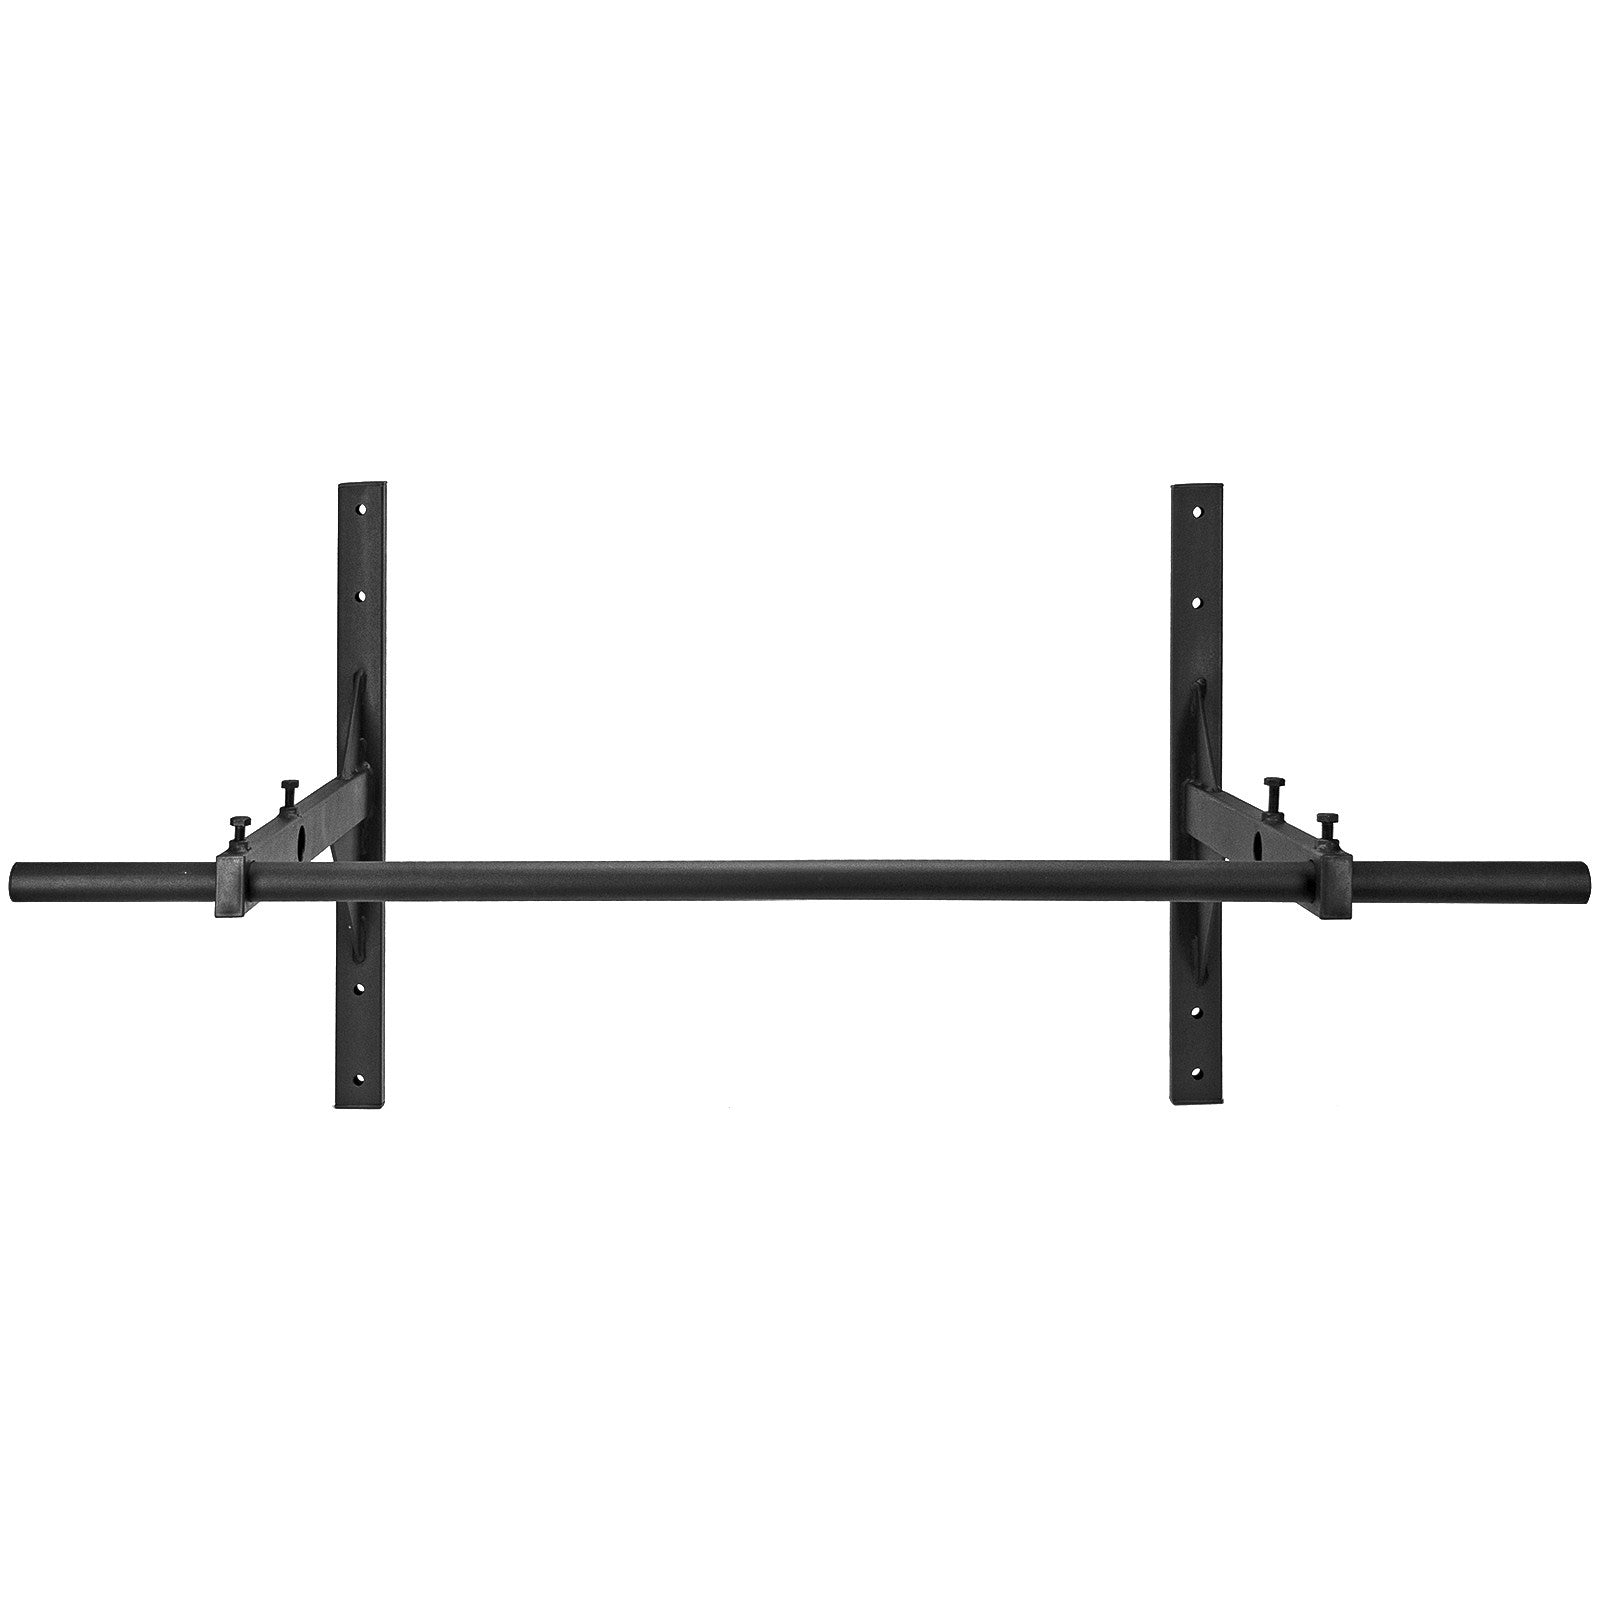 Pull Up Bars Amp Chin Up Bars Stud Mount For Garage Gym